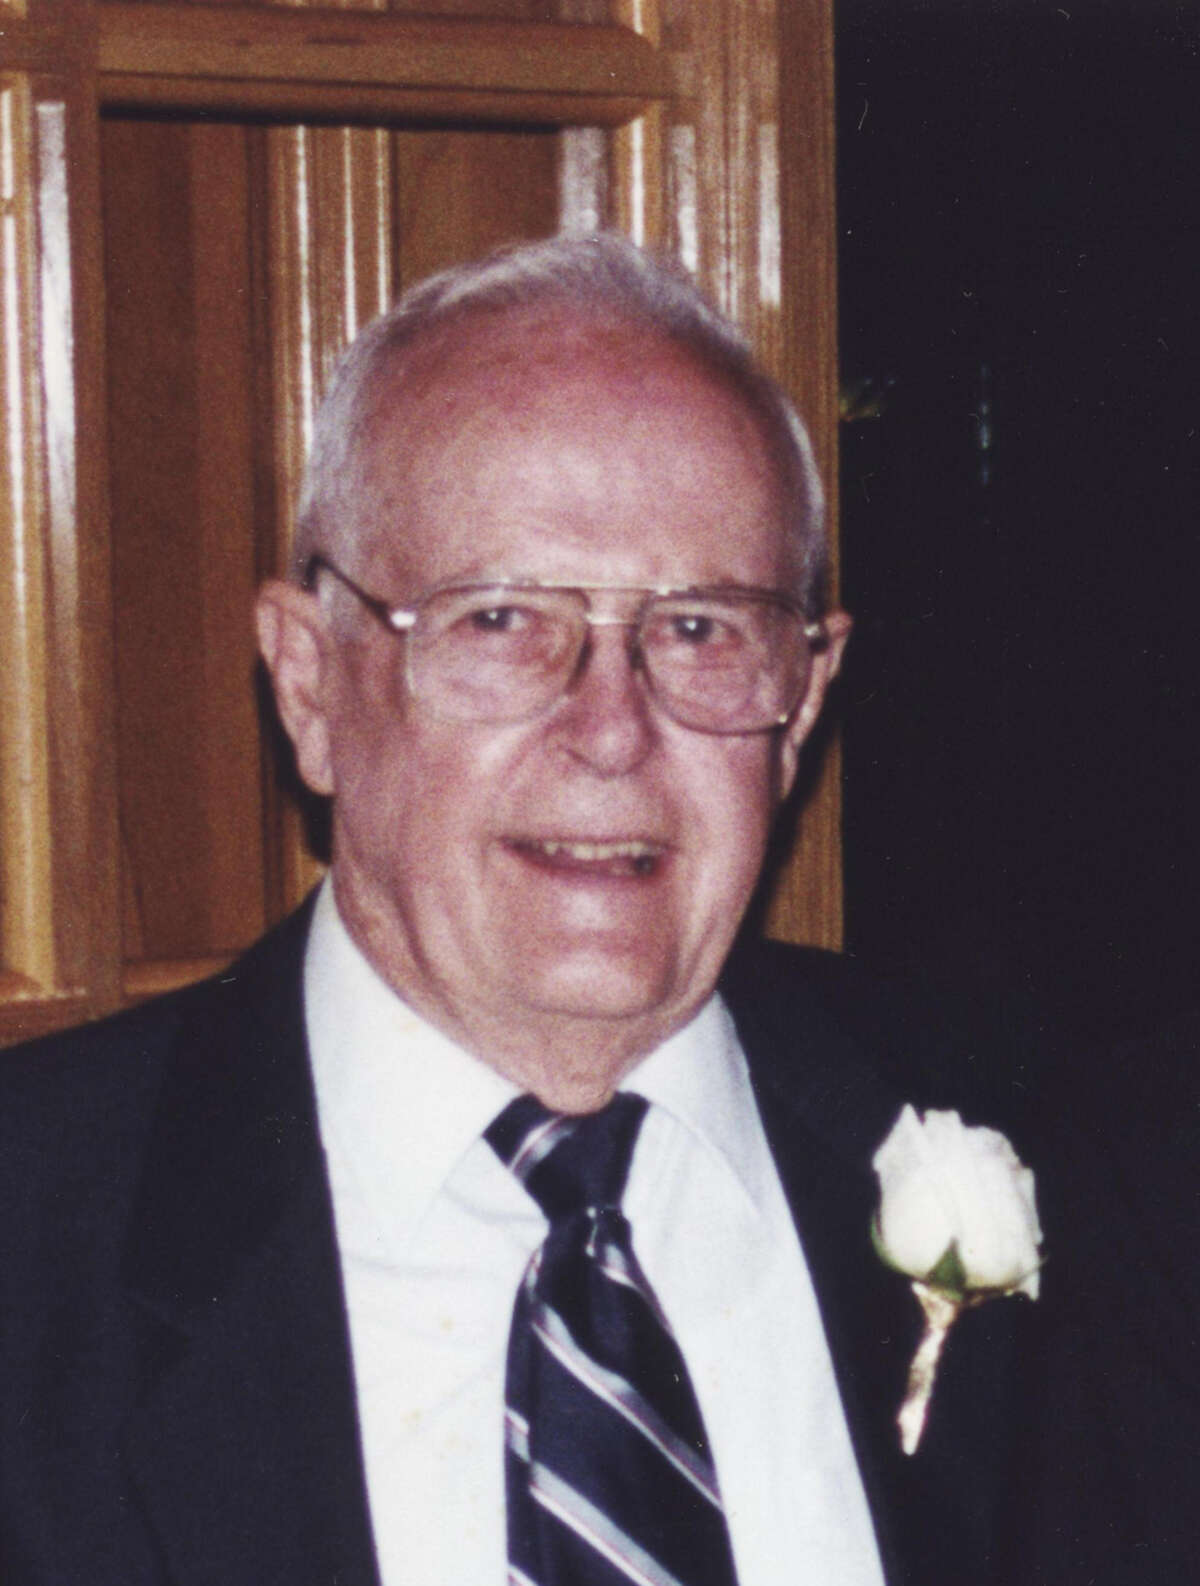 Harrold Lynn Sutton, Born on December 16, 1919 in Cordell, Oklahoma, went to be with his Lord and Creator on September 21, 2012, at the age of 92.